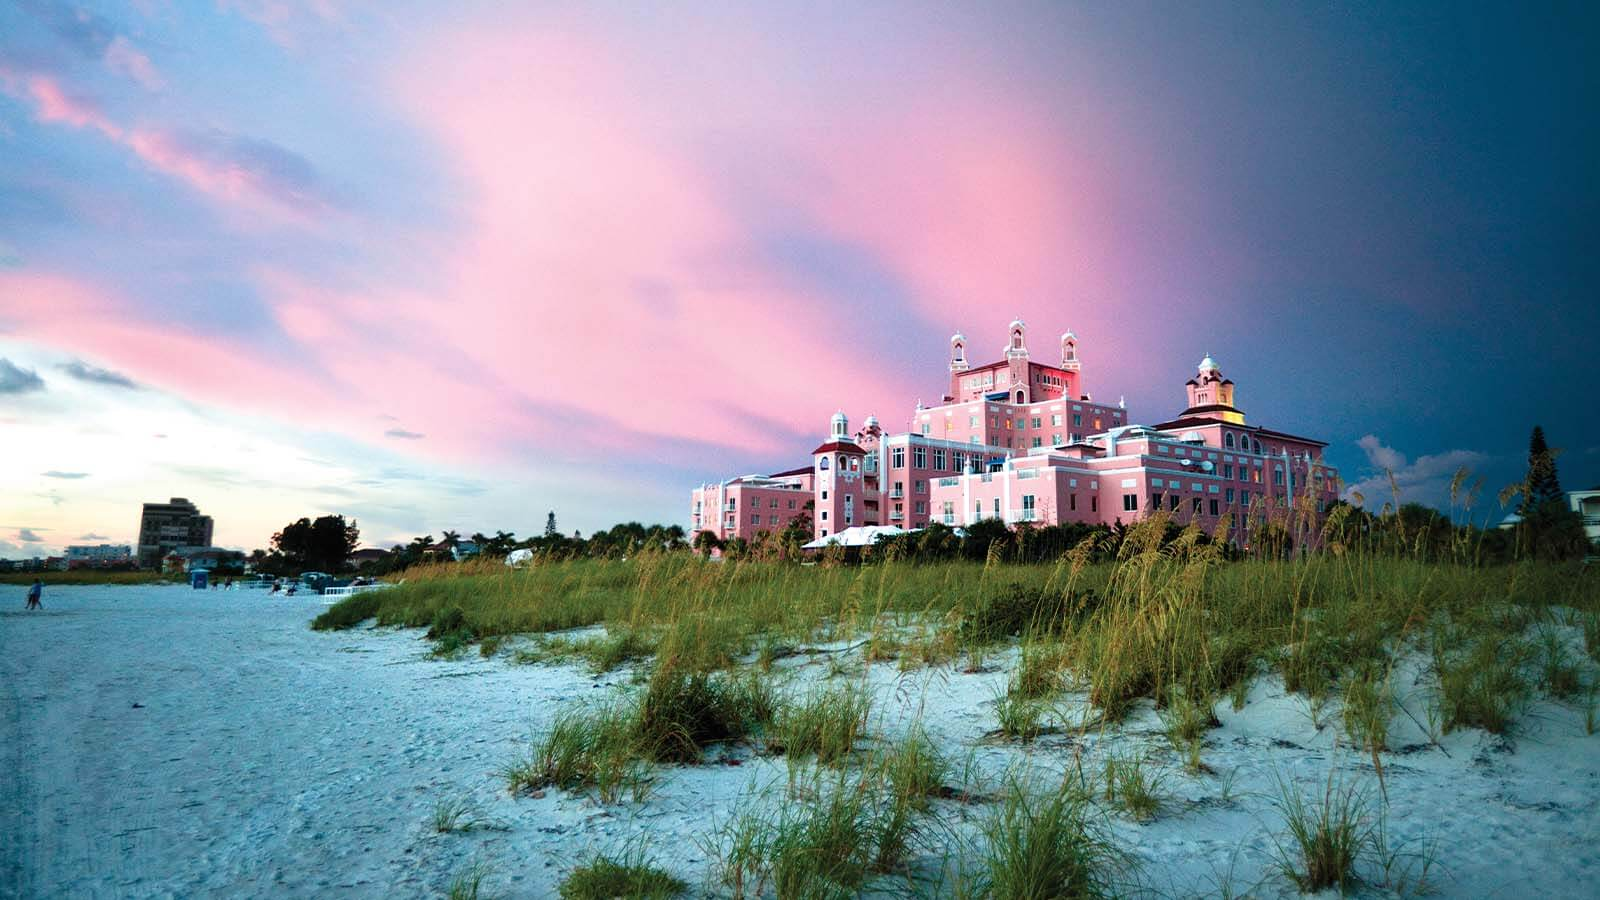 Dusk exterior of The Don CeSar in St. Pete Beach, Florida.